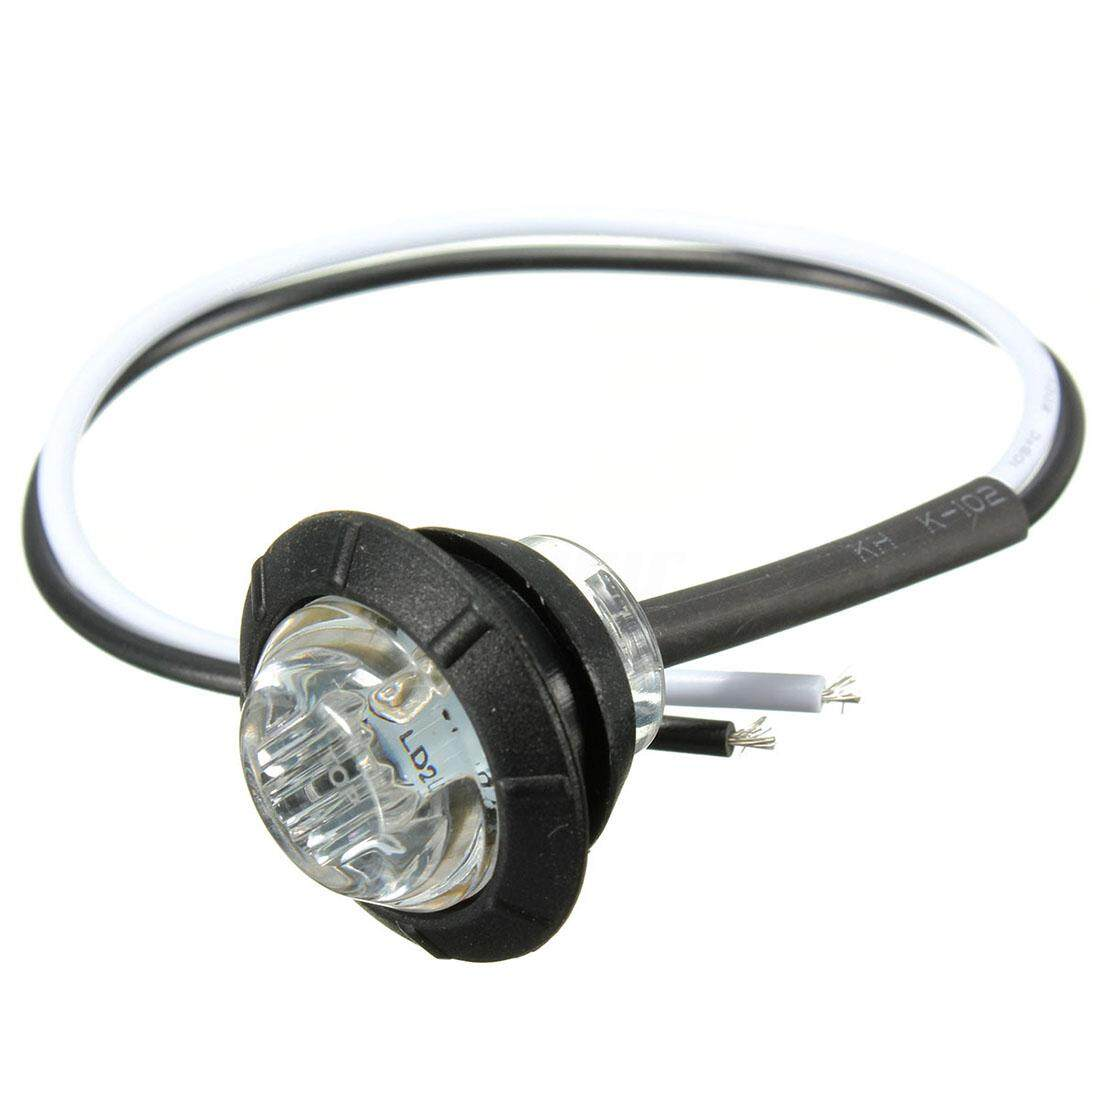 4x 12v Led Side Marker Light Indicator Lamp Truck Trailer Caravan Lorry, White - Intl By Sunnny2015.